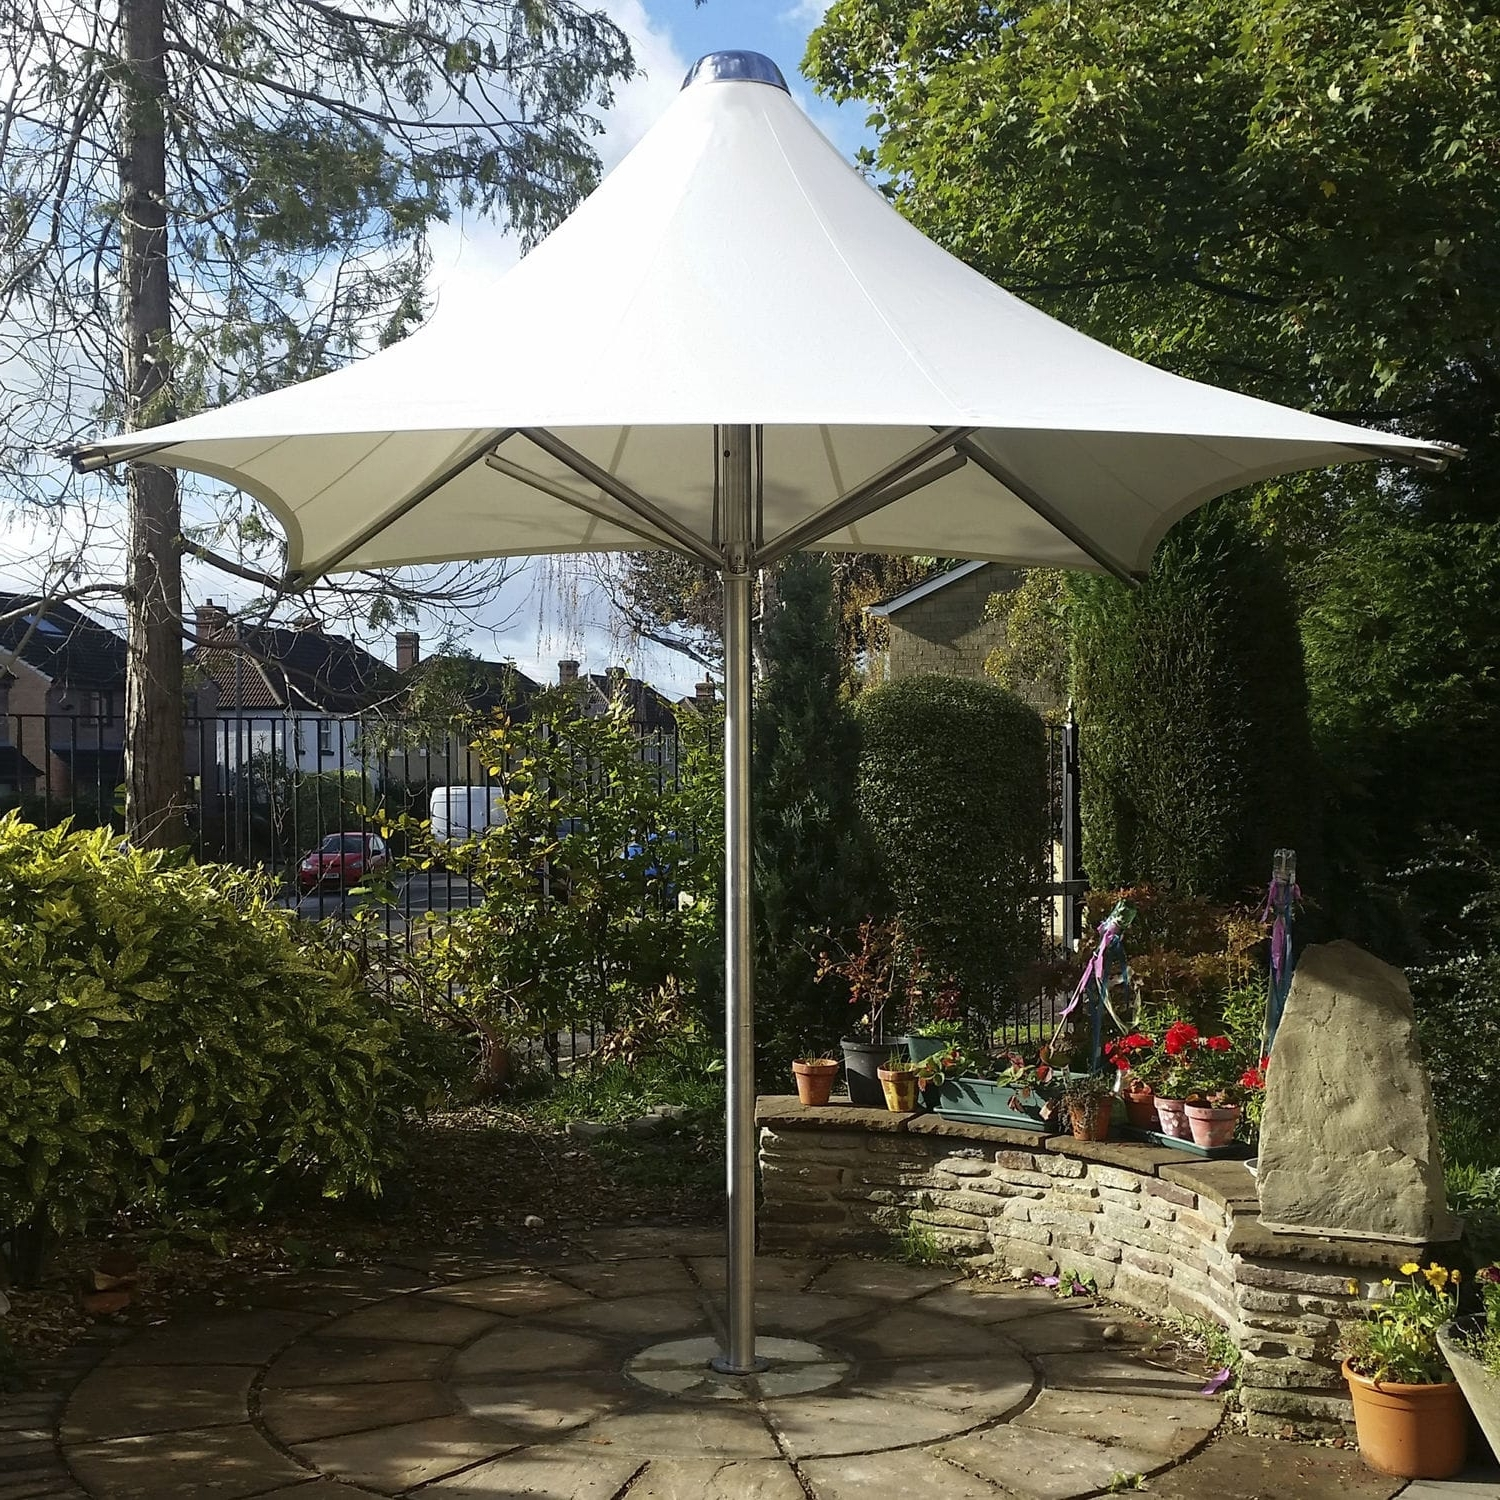 Commercial Patio Umbrella / Stainless Steel / Pvc / Wind Resistant In Recent Wind Resistant Patio Umbrellas (View 10 of 20)